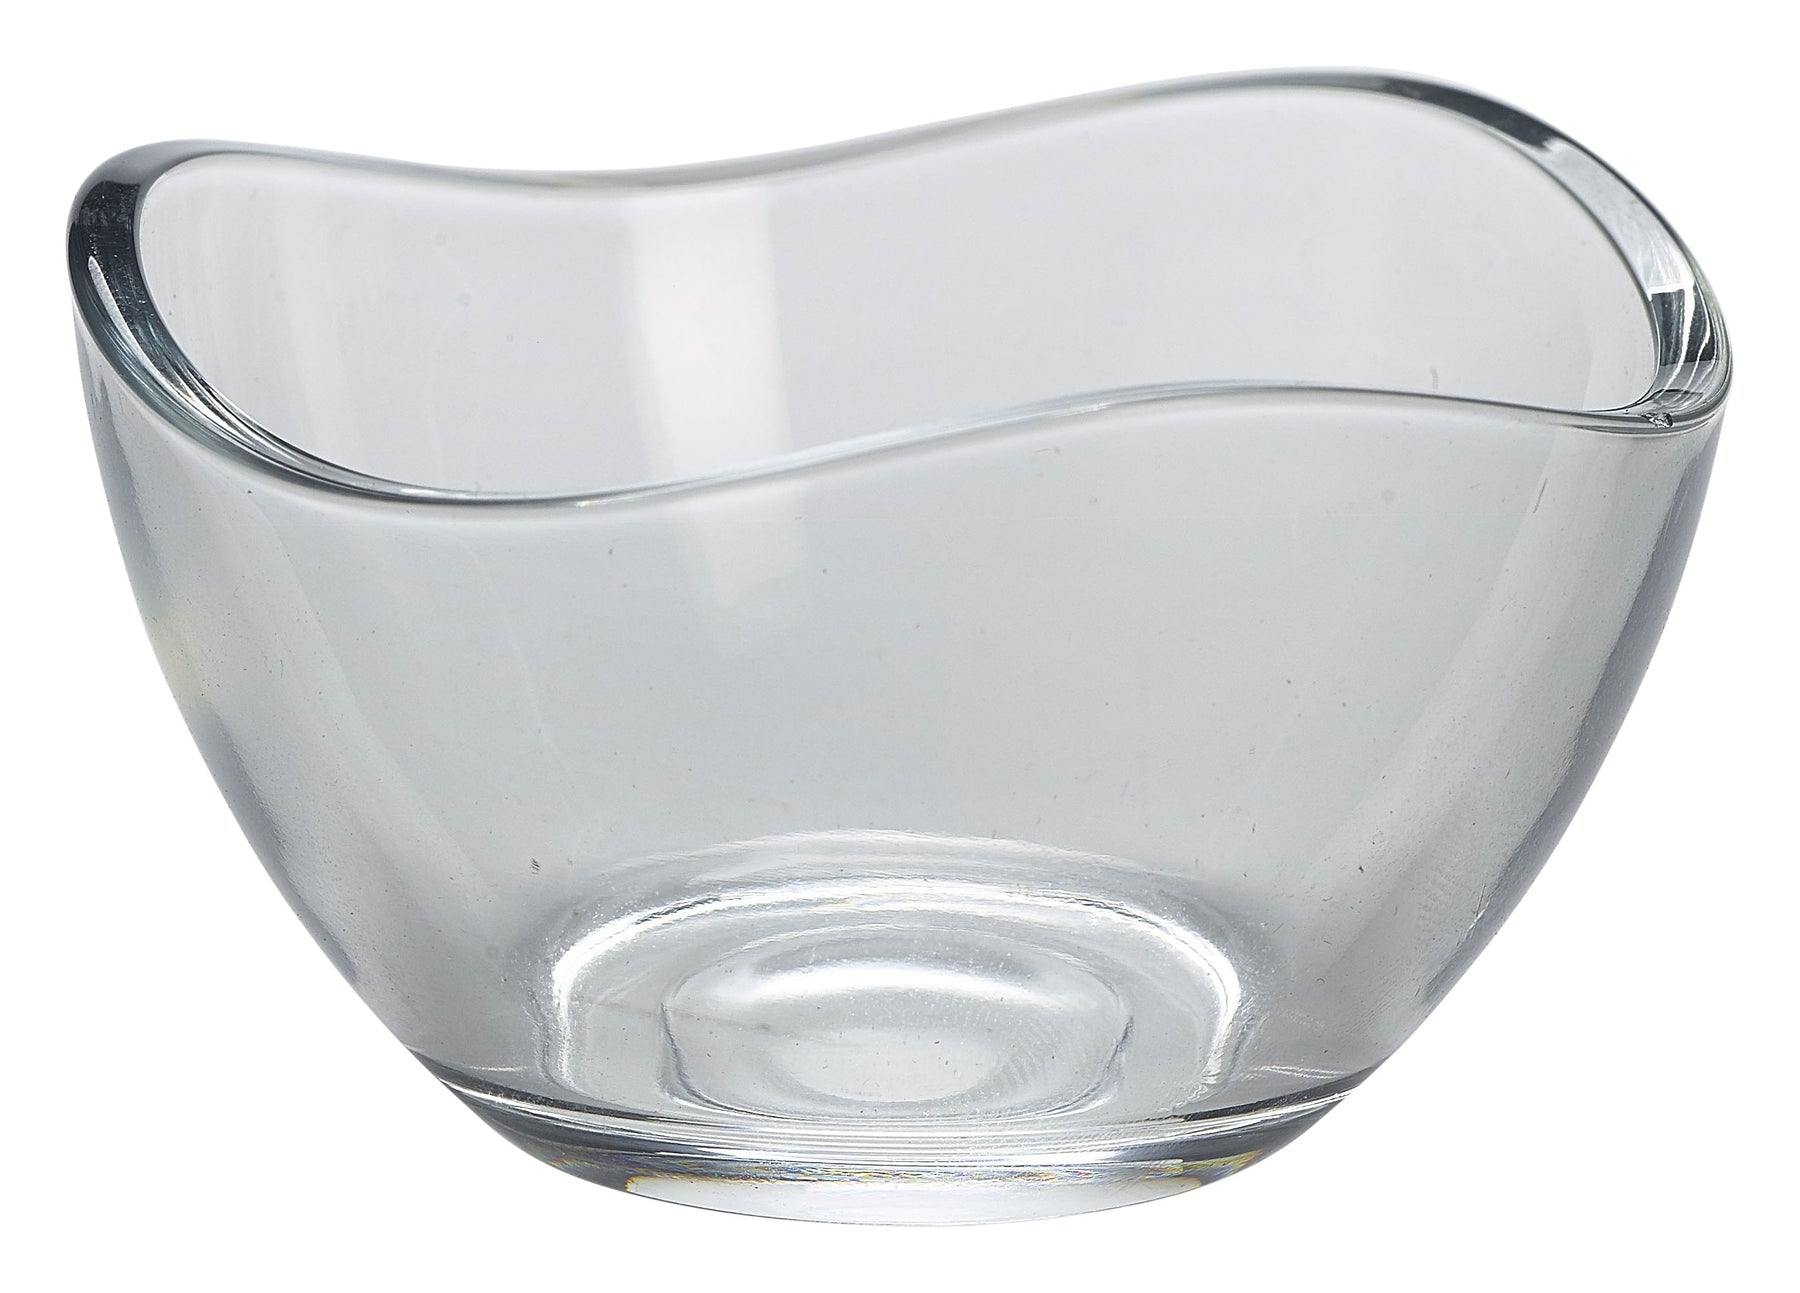 Wavy Edge Ramekin - Gecko Catering Equipment